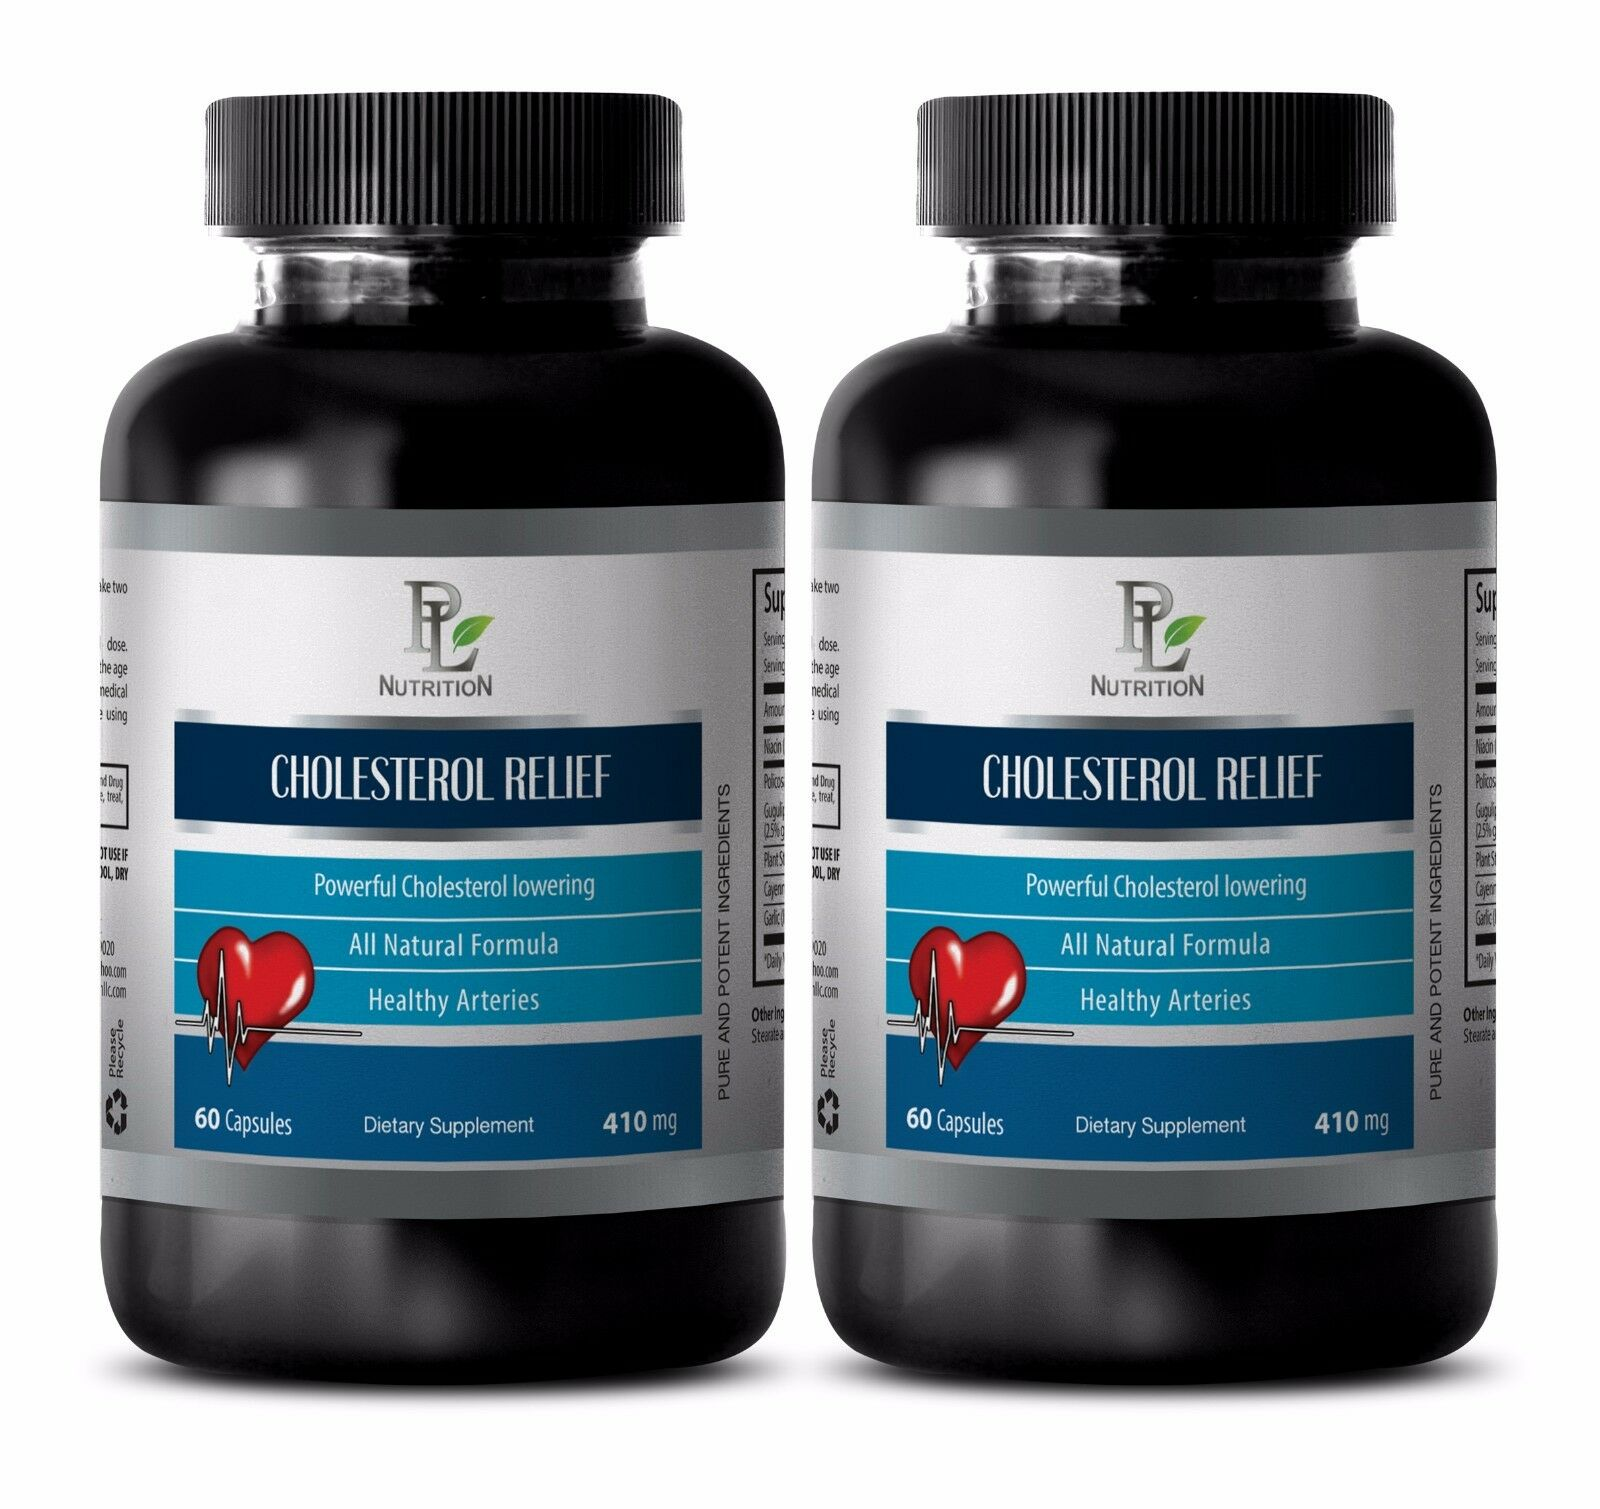 Lower Cholesterol - CHOLESTEROL RELIEF - Cholesterol-lowering effects  -120